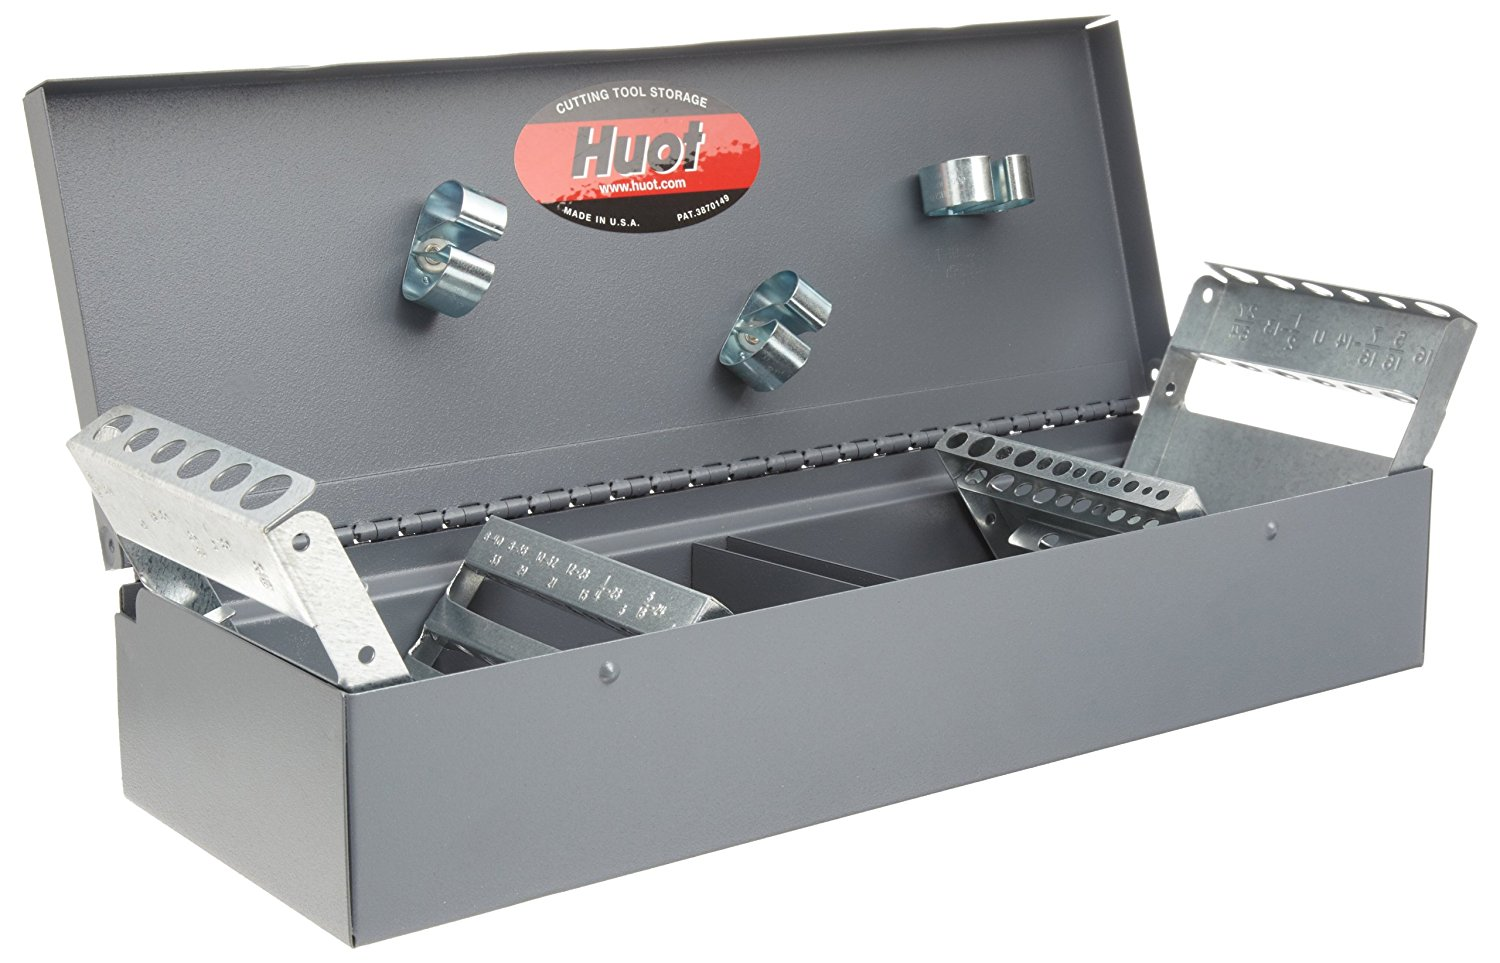 """Huot 12700 Combination Tap and Drill Bit Index for Tap Sizes #6-40 to 1/2""""-20 (NF) and #6-32 to 1/2""""-13 (NC) and Drill Bit Sizes #33 to 29/64"""" (NF) and #36 to 27/64"""" (NC)"""